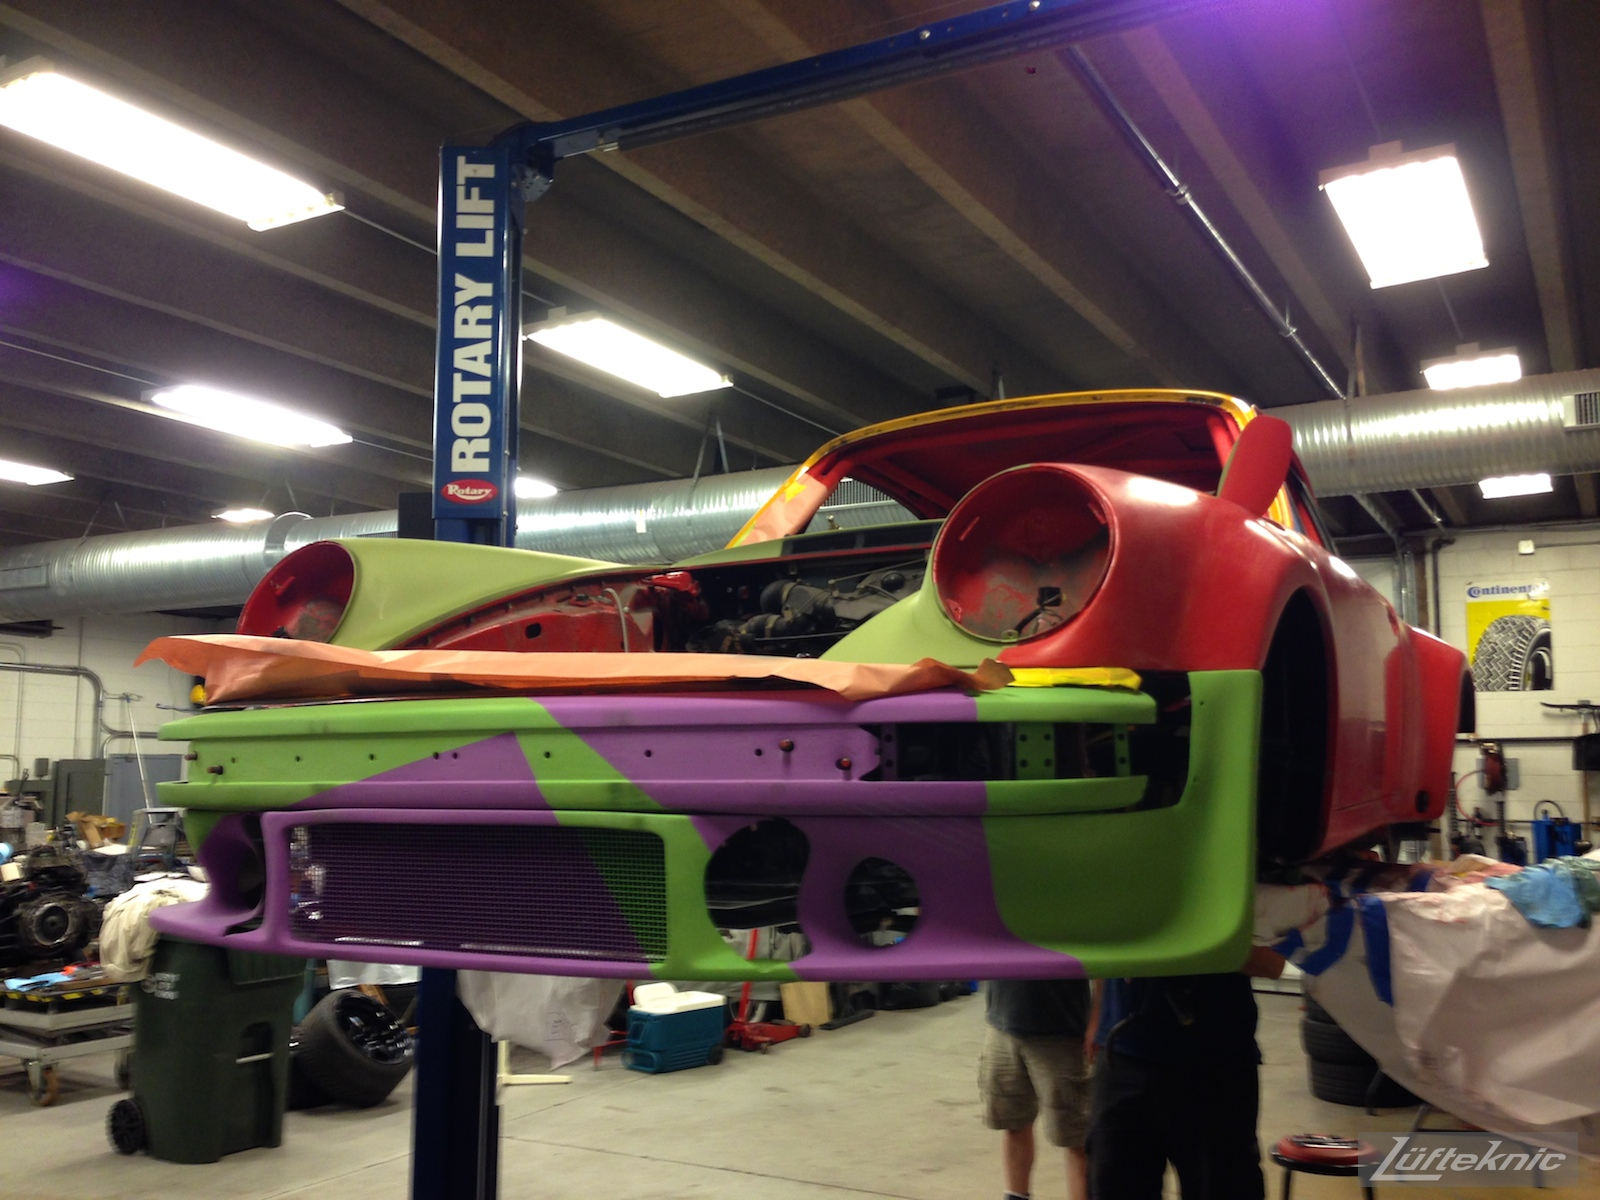 Lüfteknic #projectstuka Porsche 930 Turbo bumper trial fitment